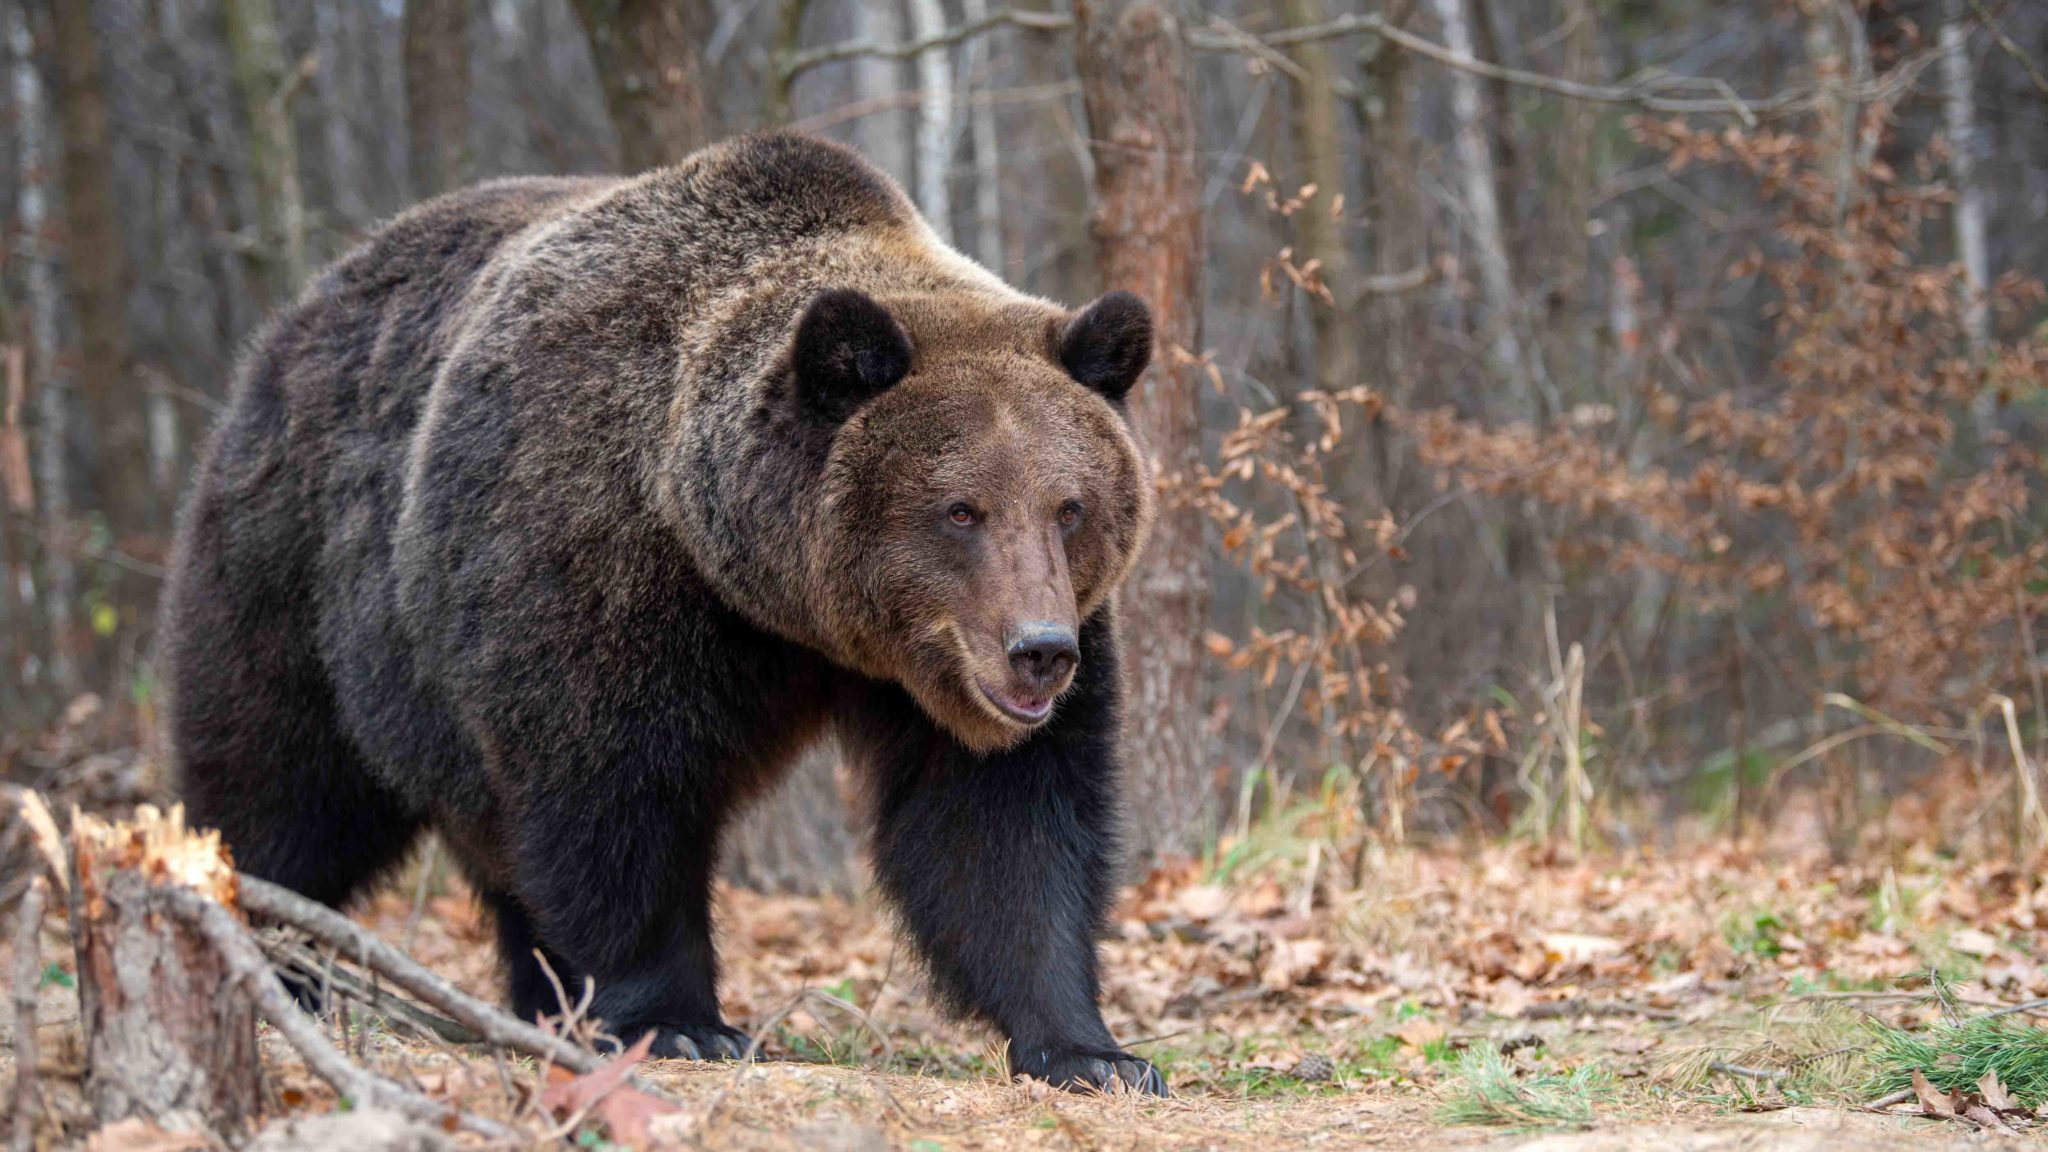 26 Grizzlies Captured, 18 Euthanized in Wyoming Last Year